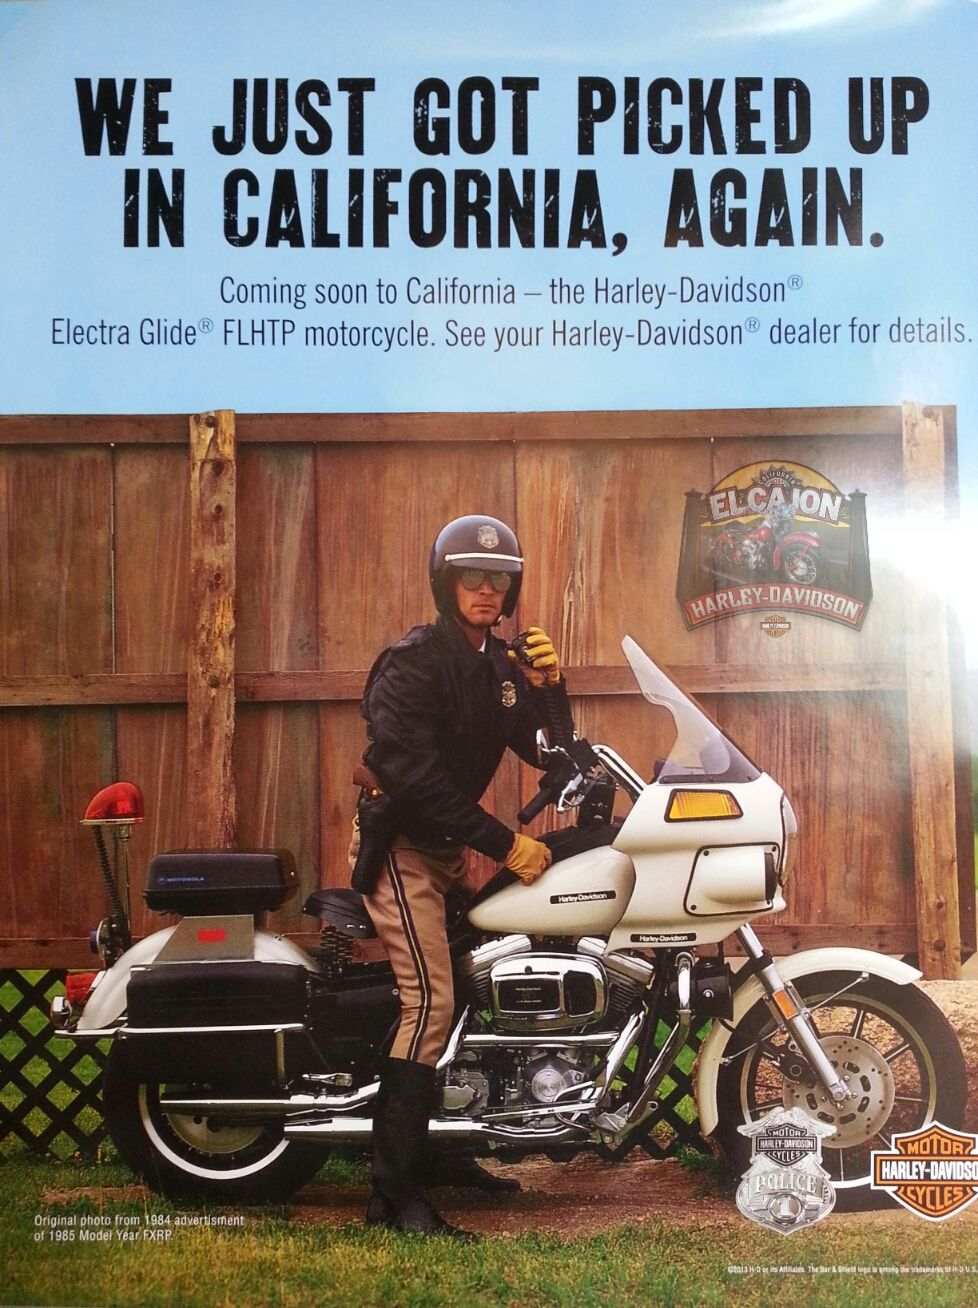 Starting in August, California Highway Patrol will be back